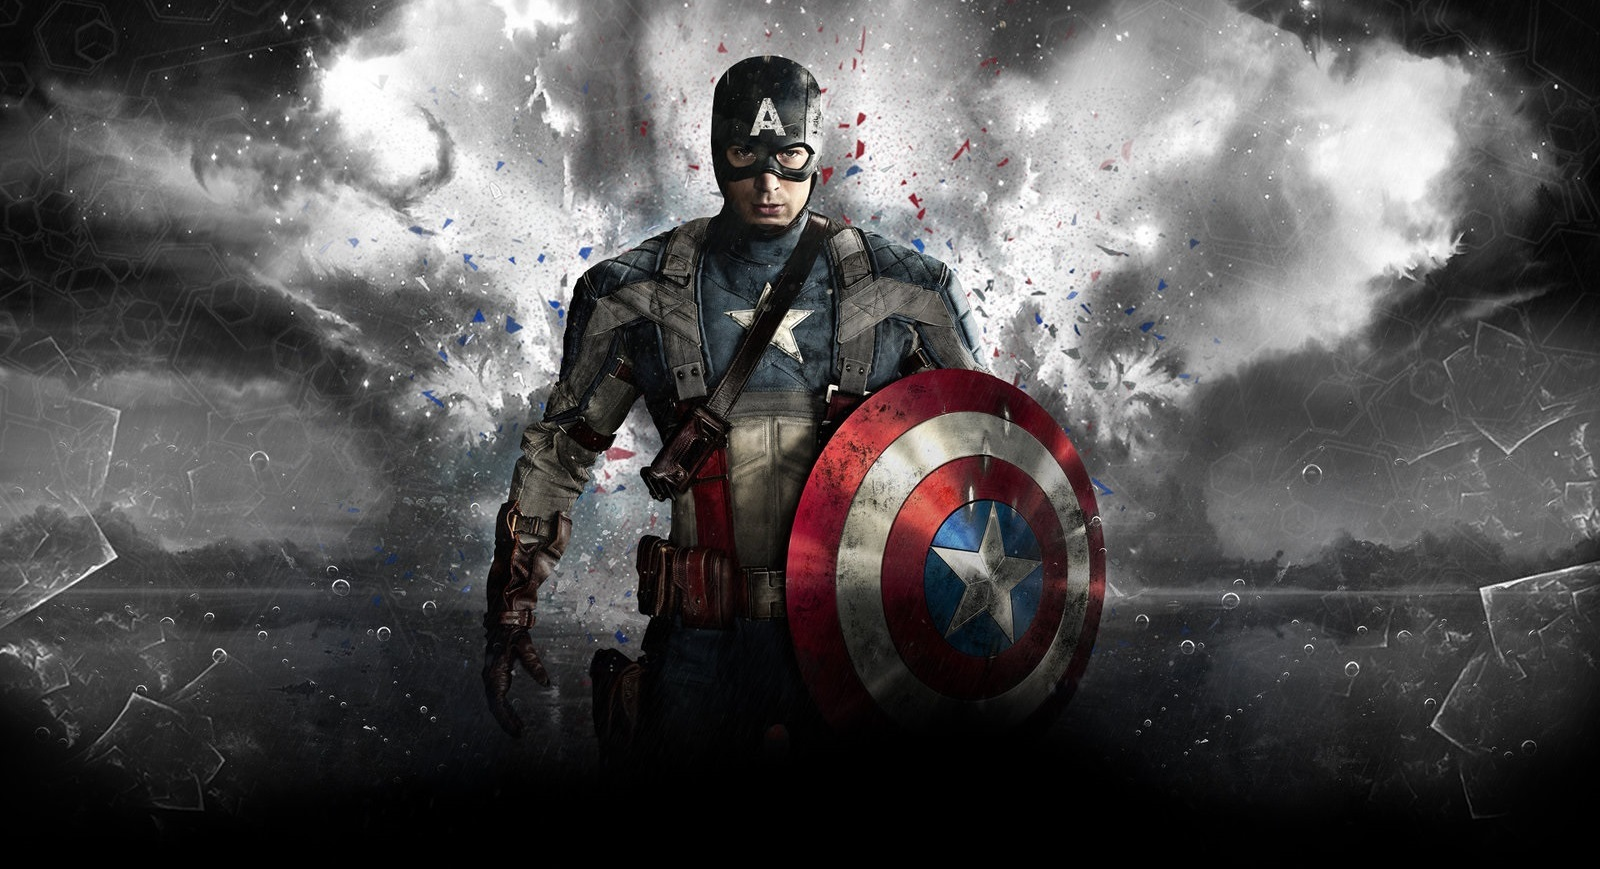 Captain America HD Wallpaper For Desktop 1600x869